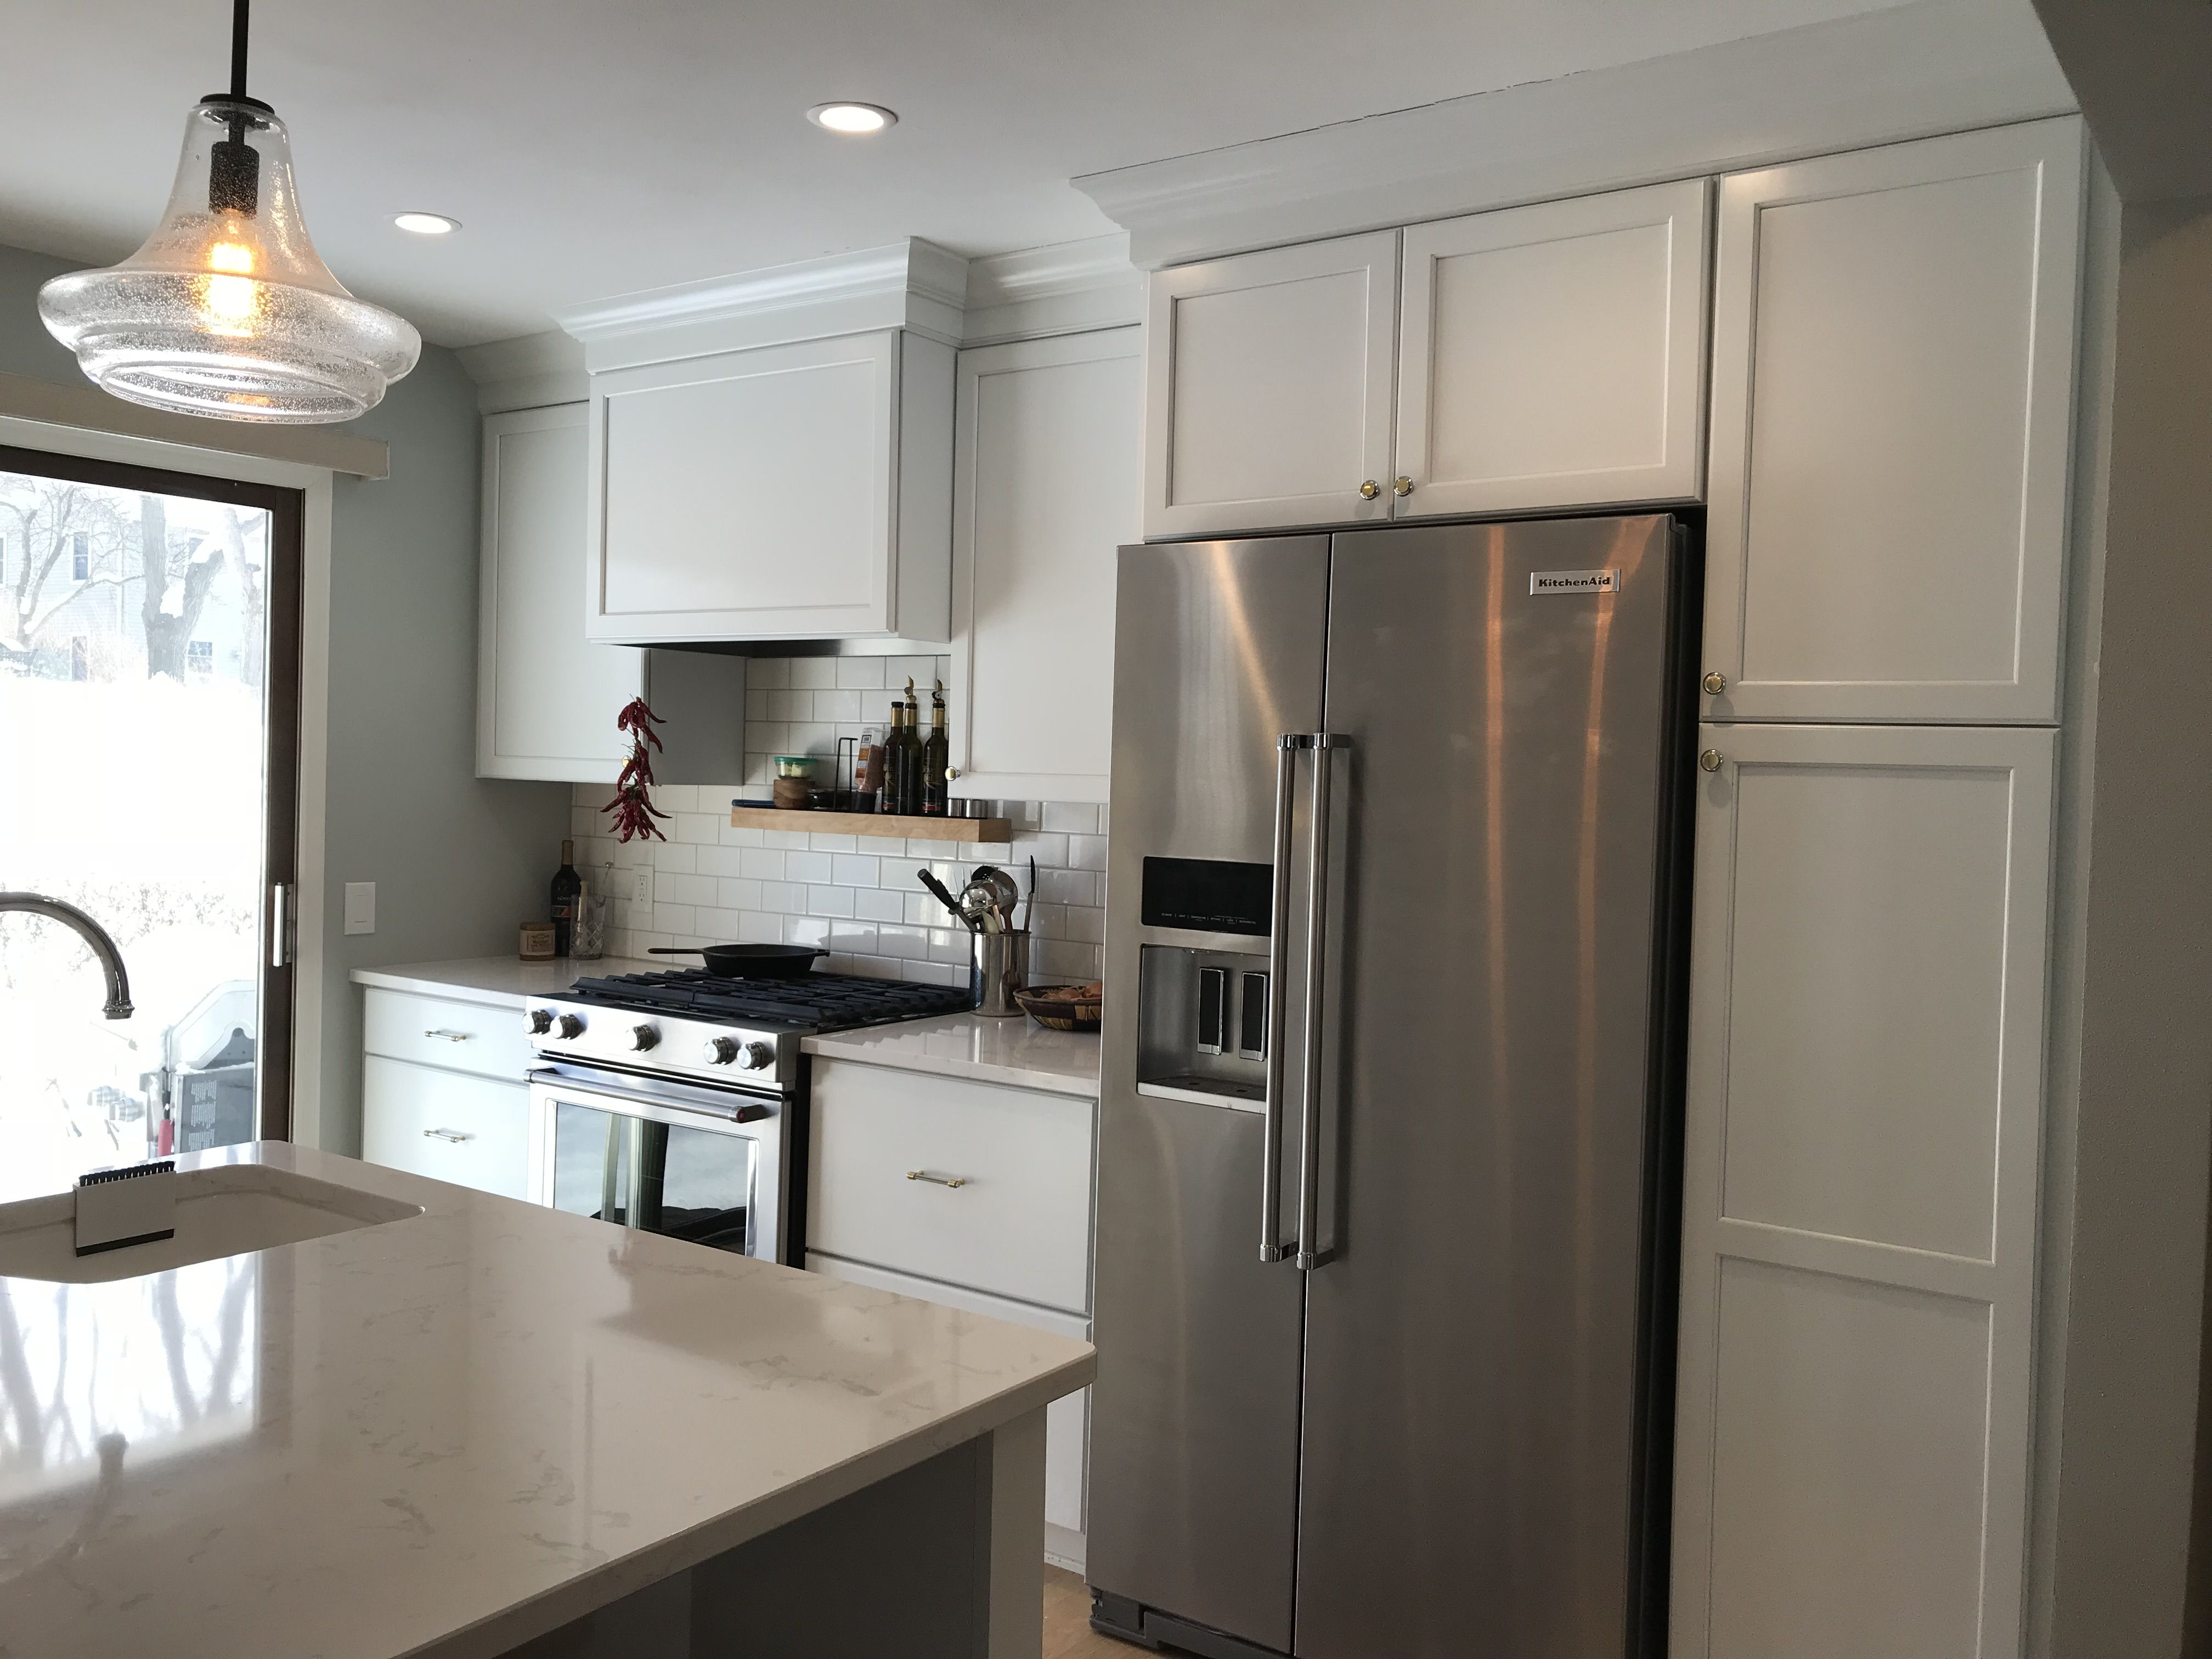 Contemporary White Cabinets With Crown Molding That Continues The